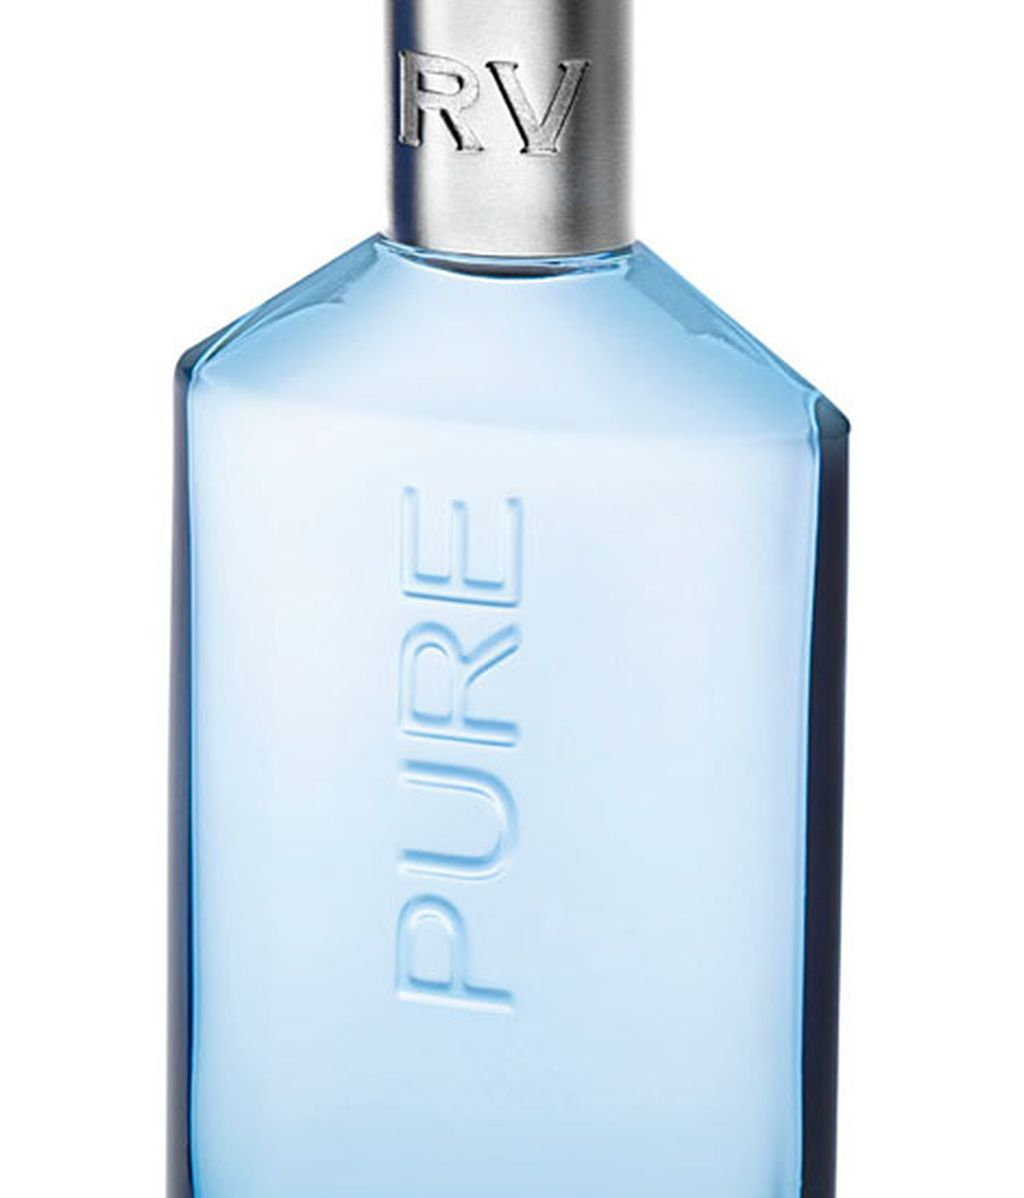 Pure de Roberto Verino (42 € 150 ml)